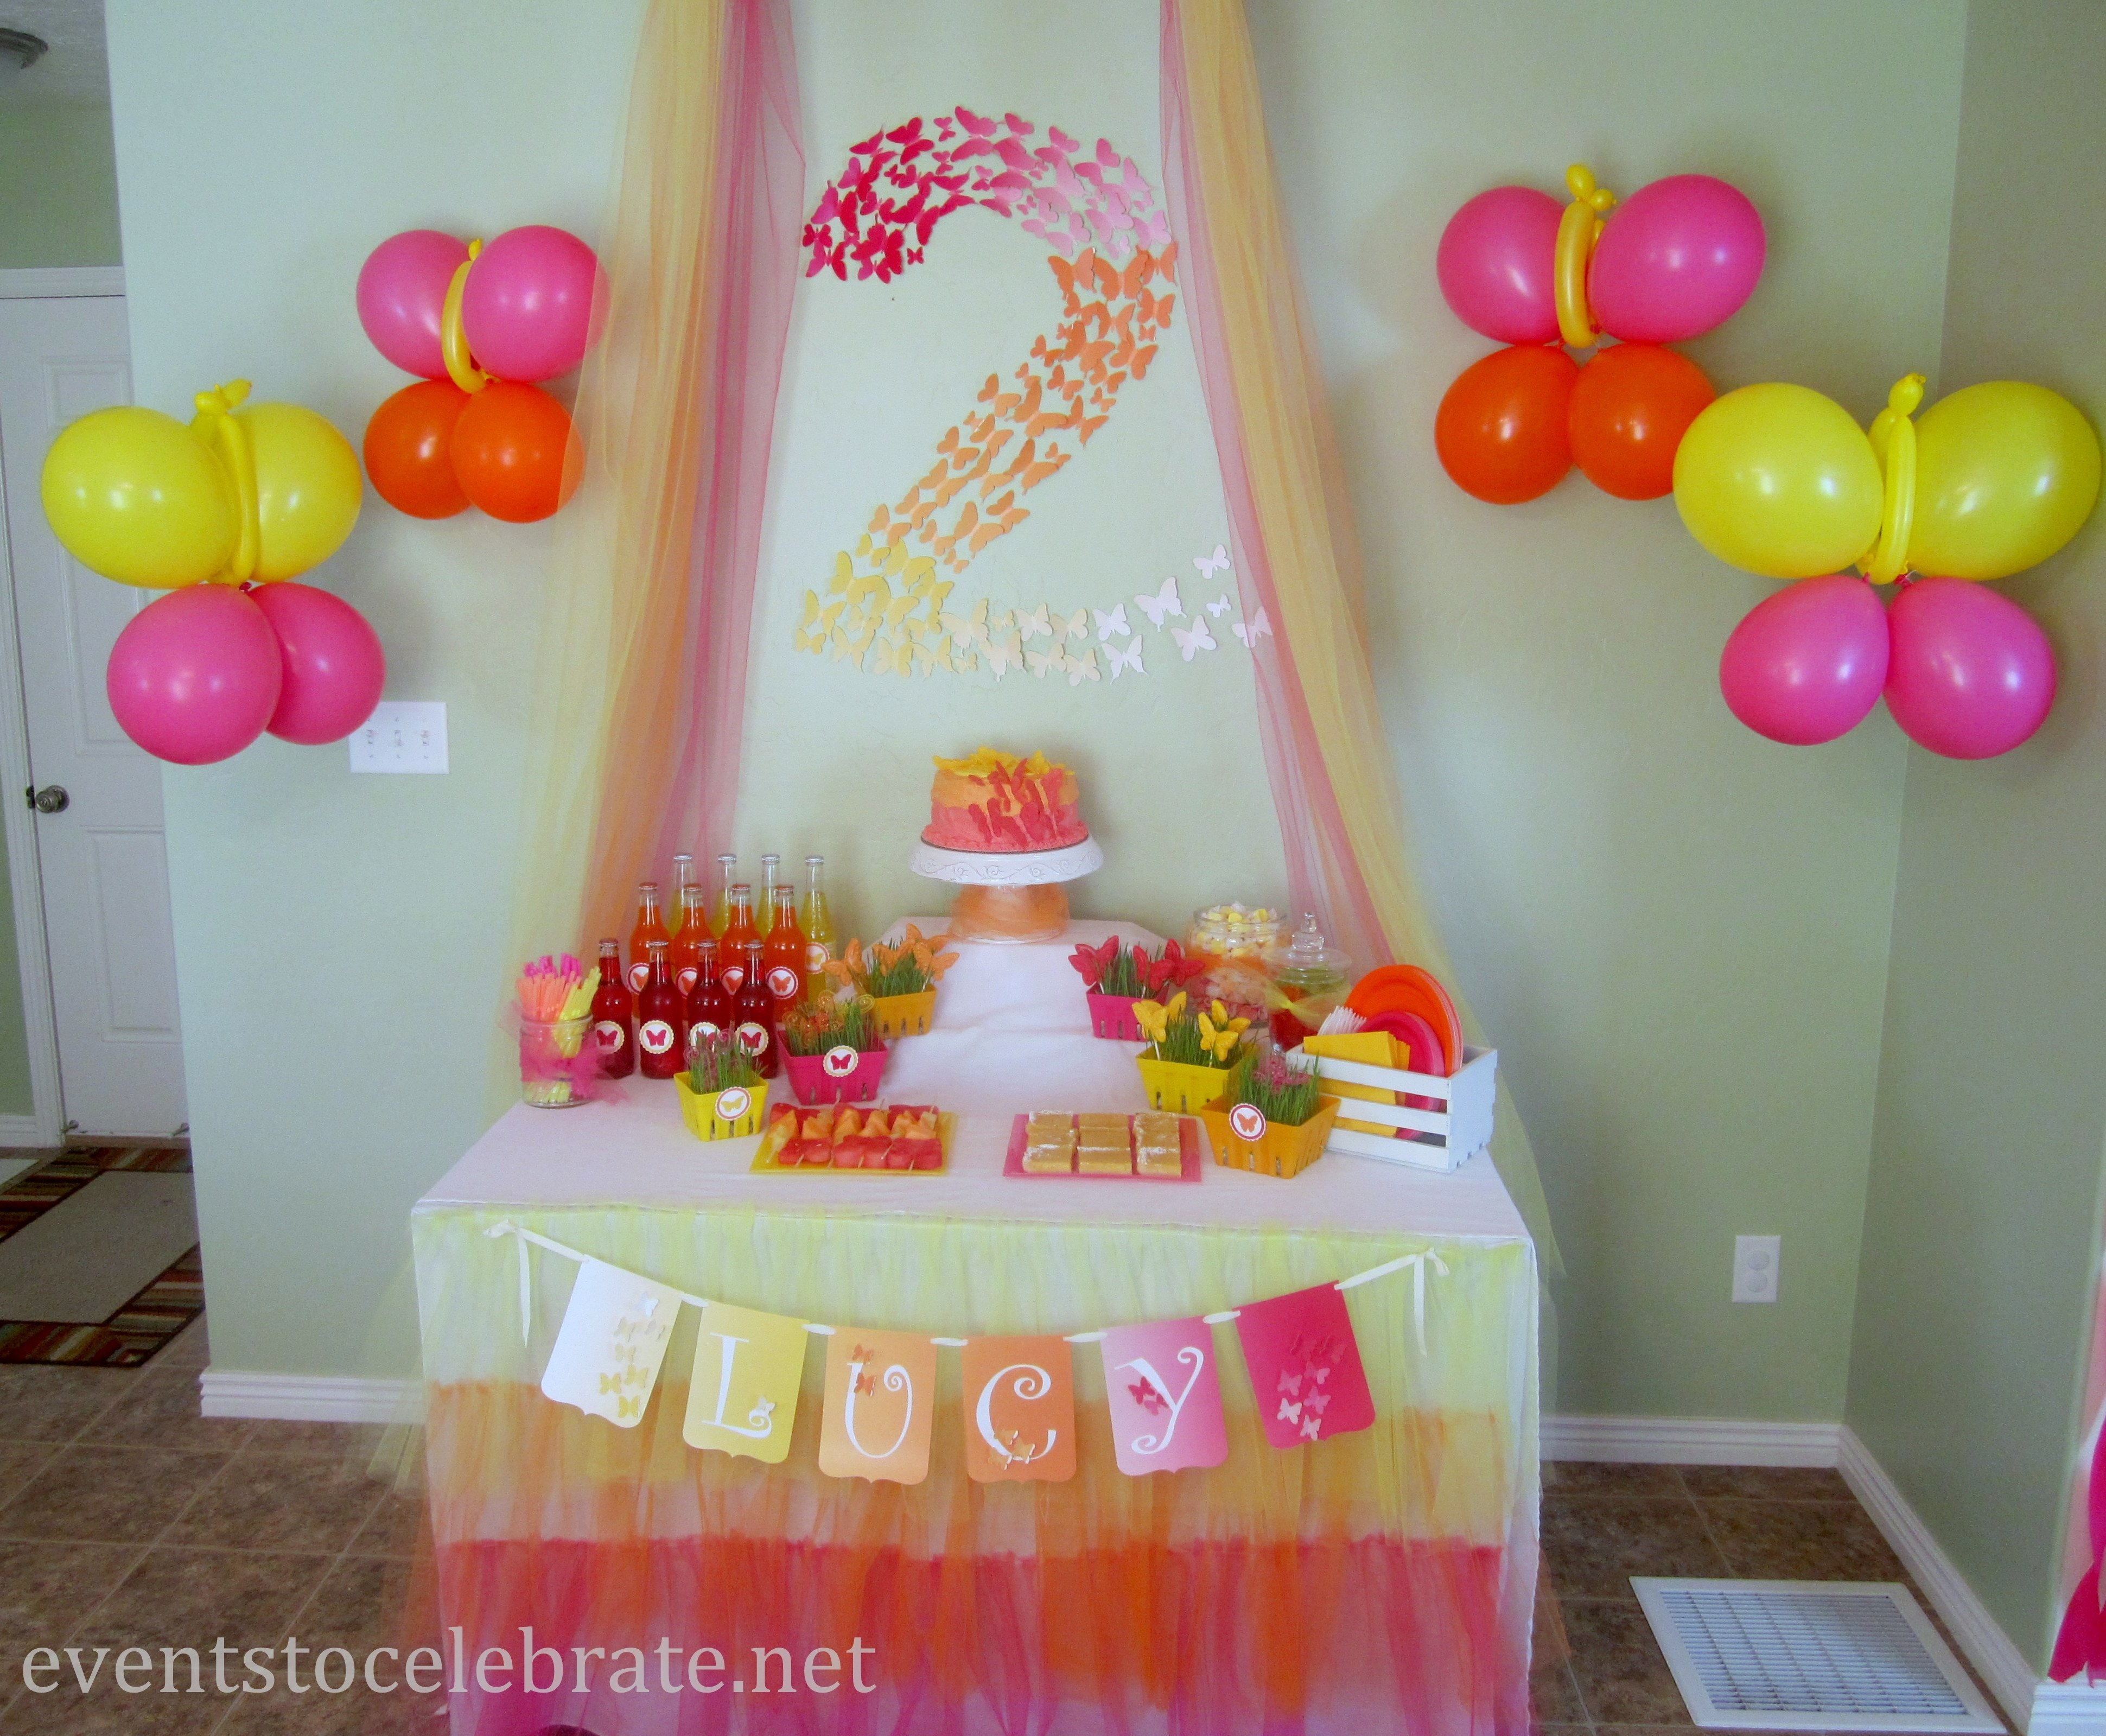 10 Spectacular Decoration Ideas For Birthday Party butterfly themed birthday party decorations events to celebrate 2020